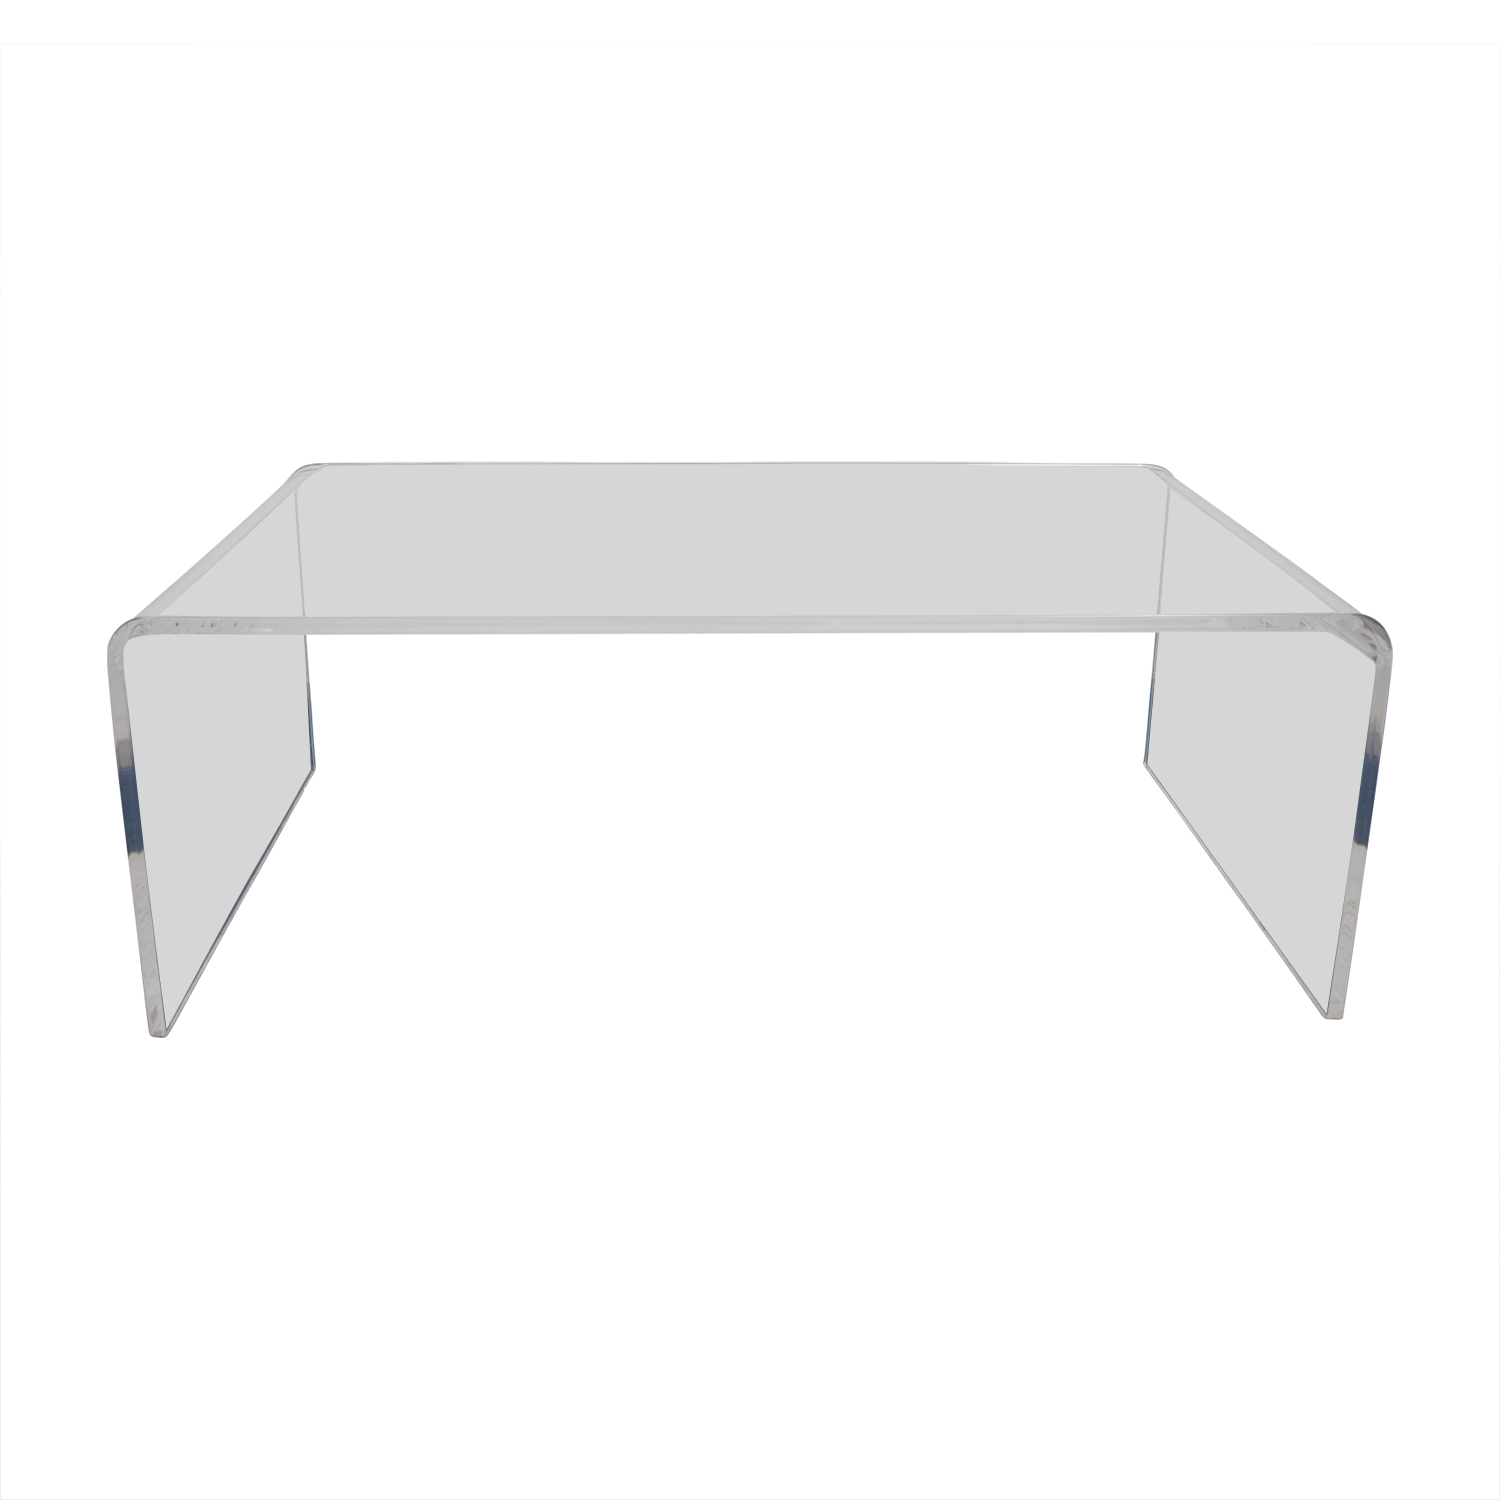 60 Off Cb2 Cb2 Peekaboo Acrylic Coffee Table Tables